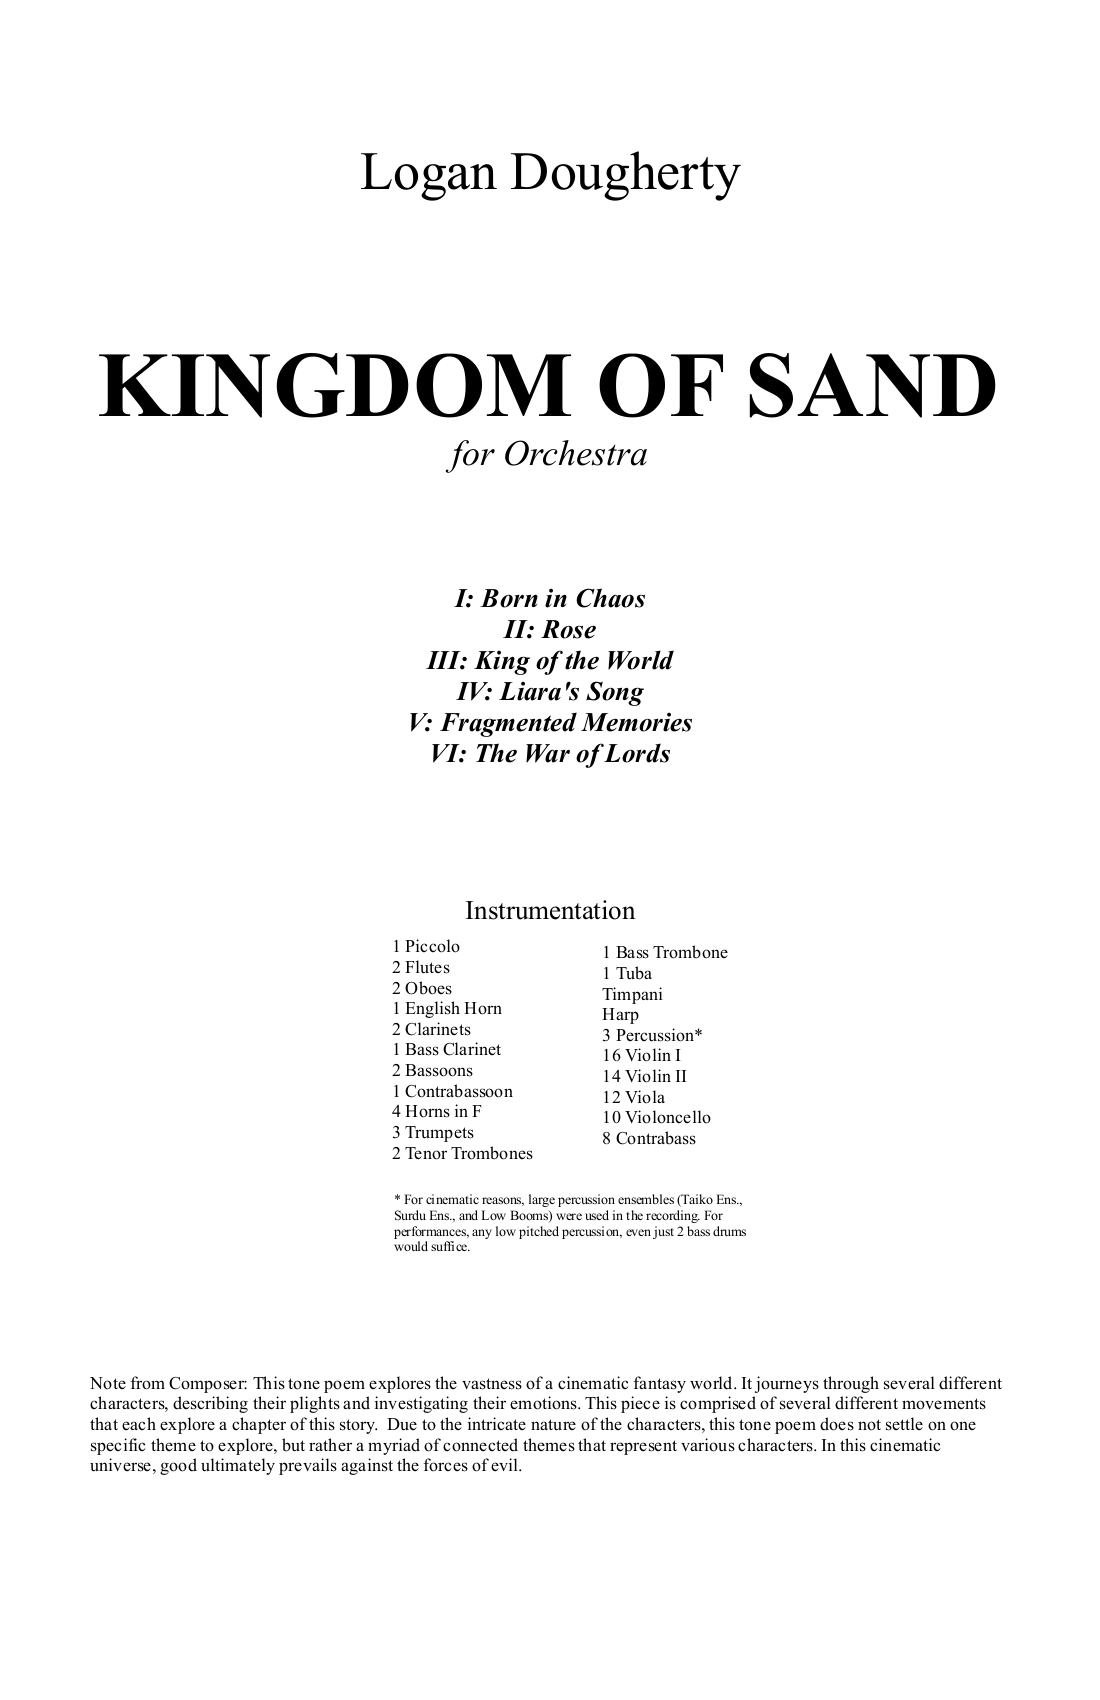 Dougherty - Kingdom of Sand - Score - No Timestamps.png